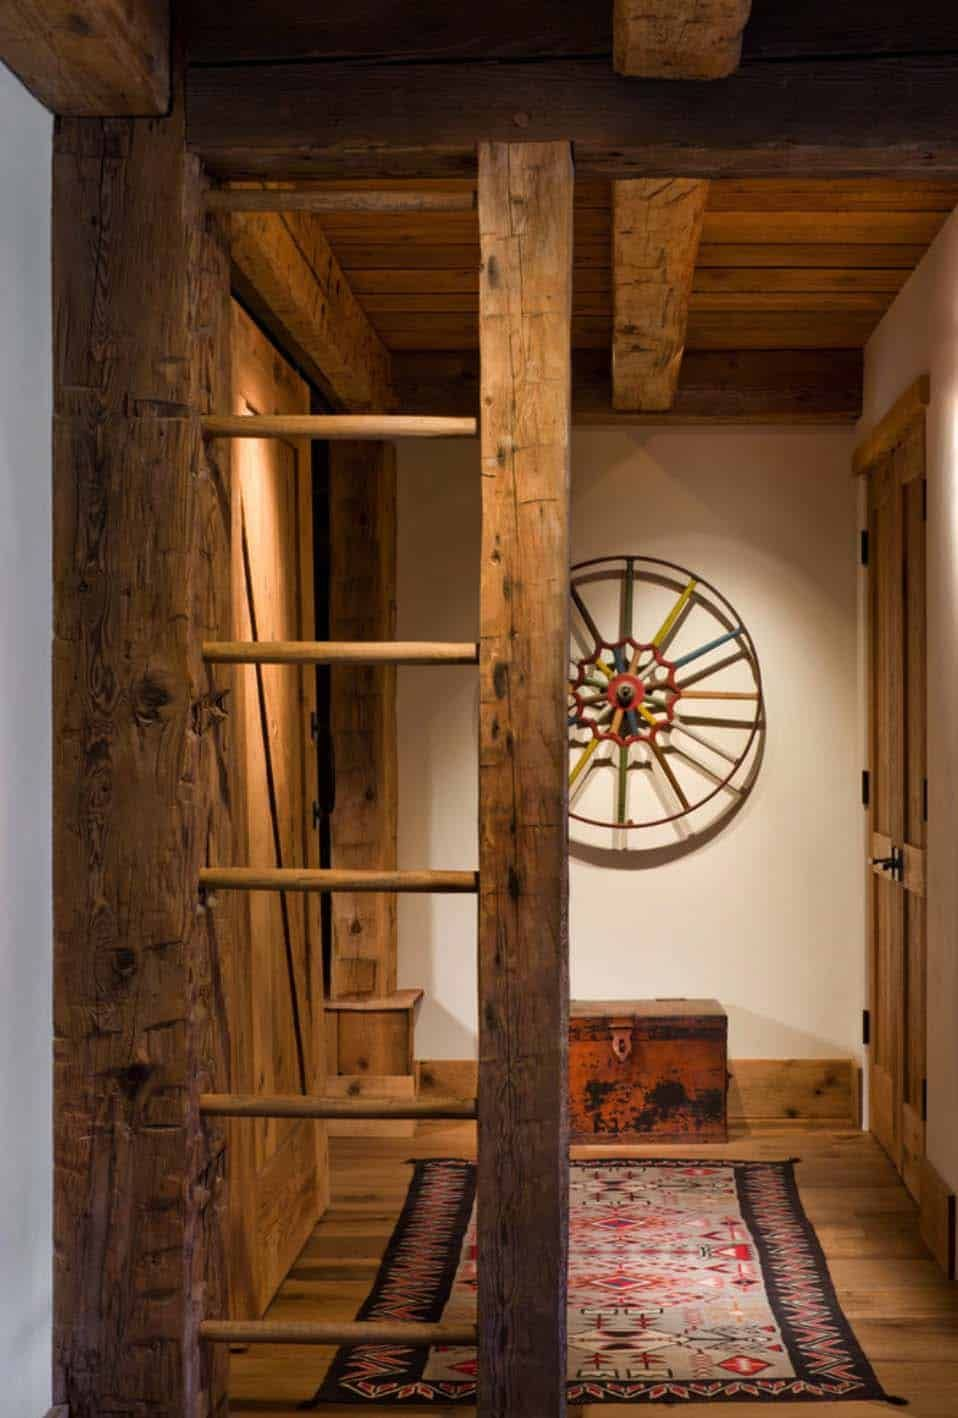 There's a very strong rustic vibe inside the house created by not just the materials and finishes used throughout but also the decor pieces